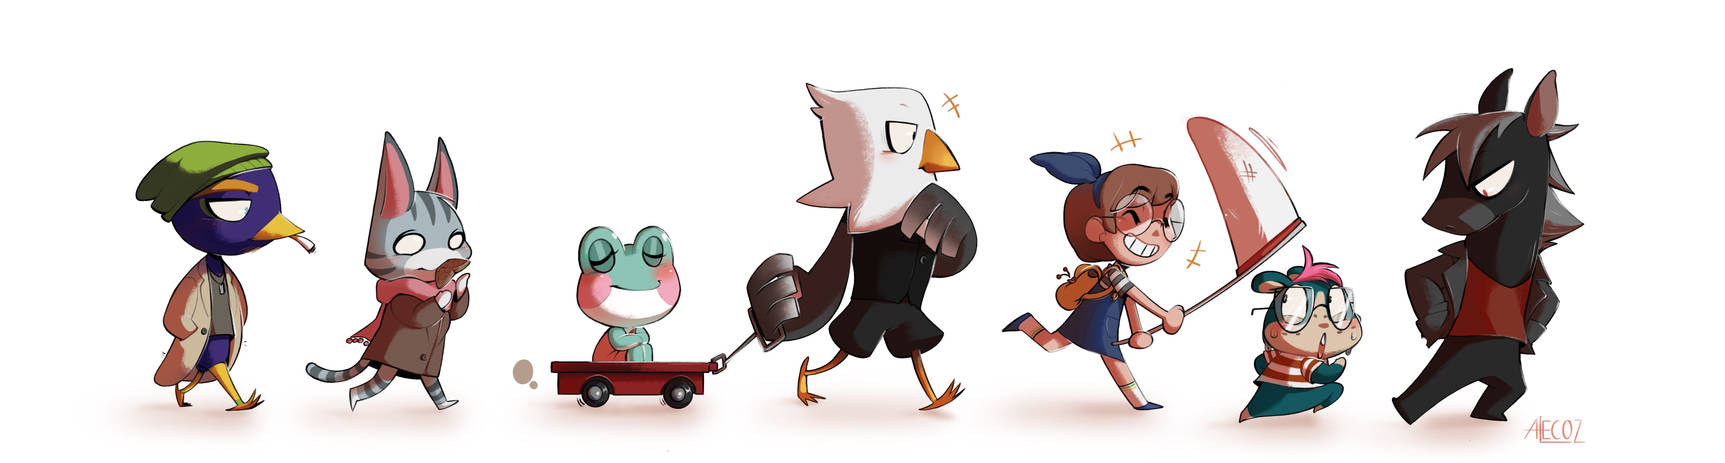 AC - Marching to a new adventure